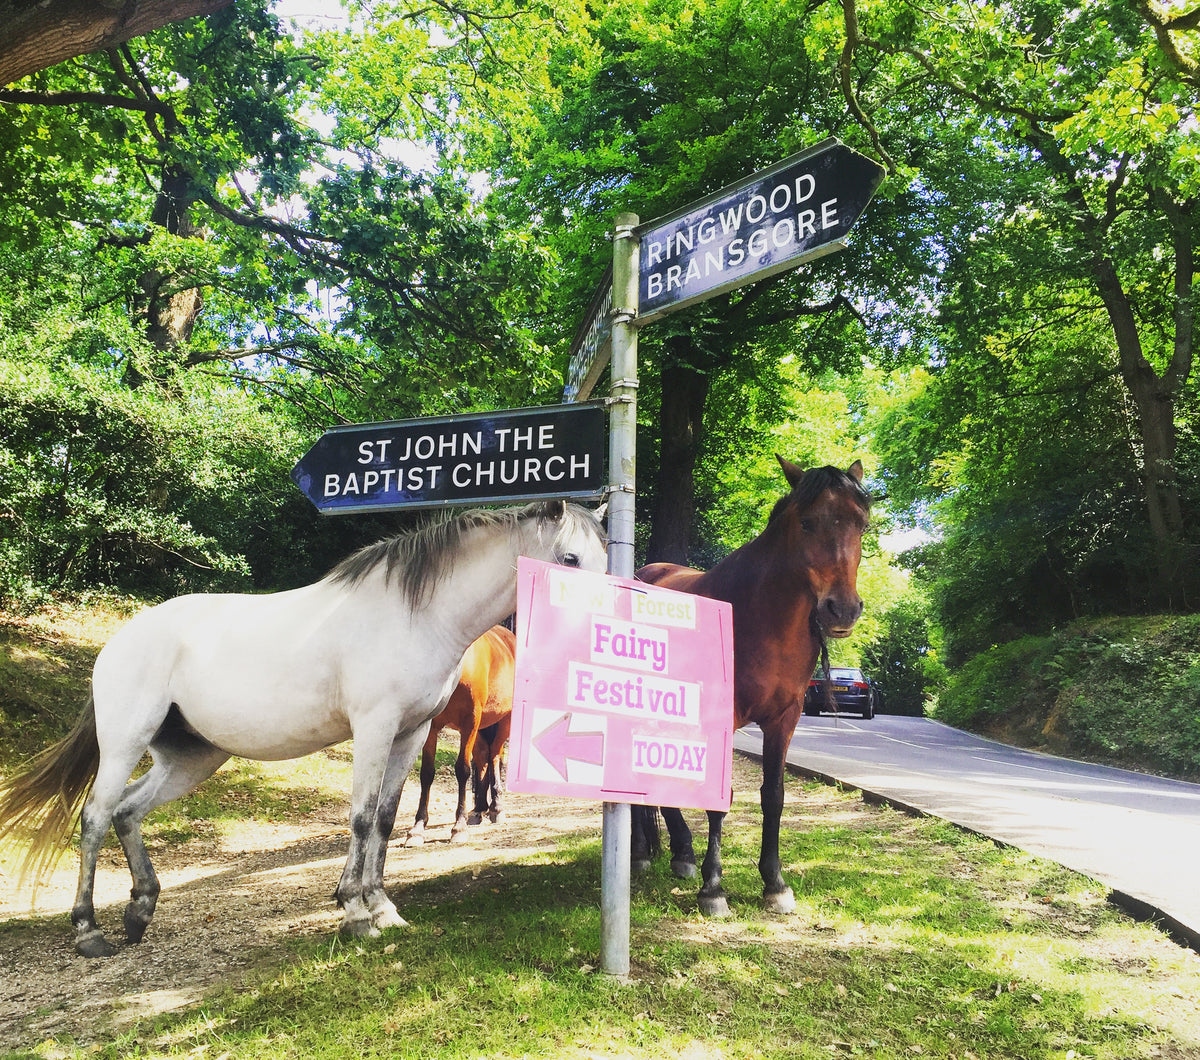 A Special Post from The New Forest Fairy Festival